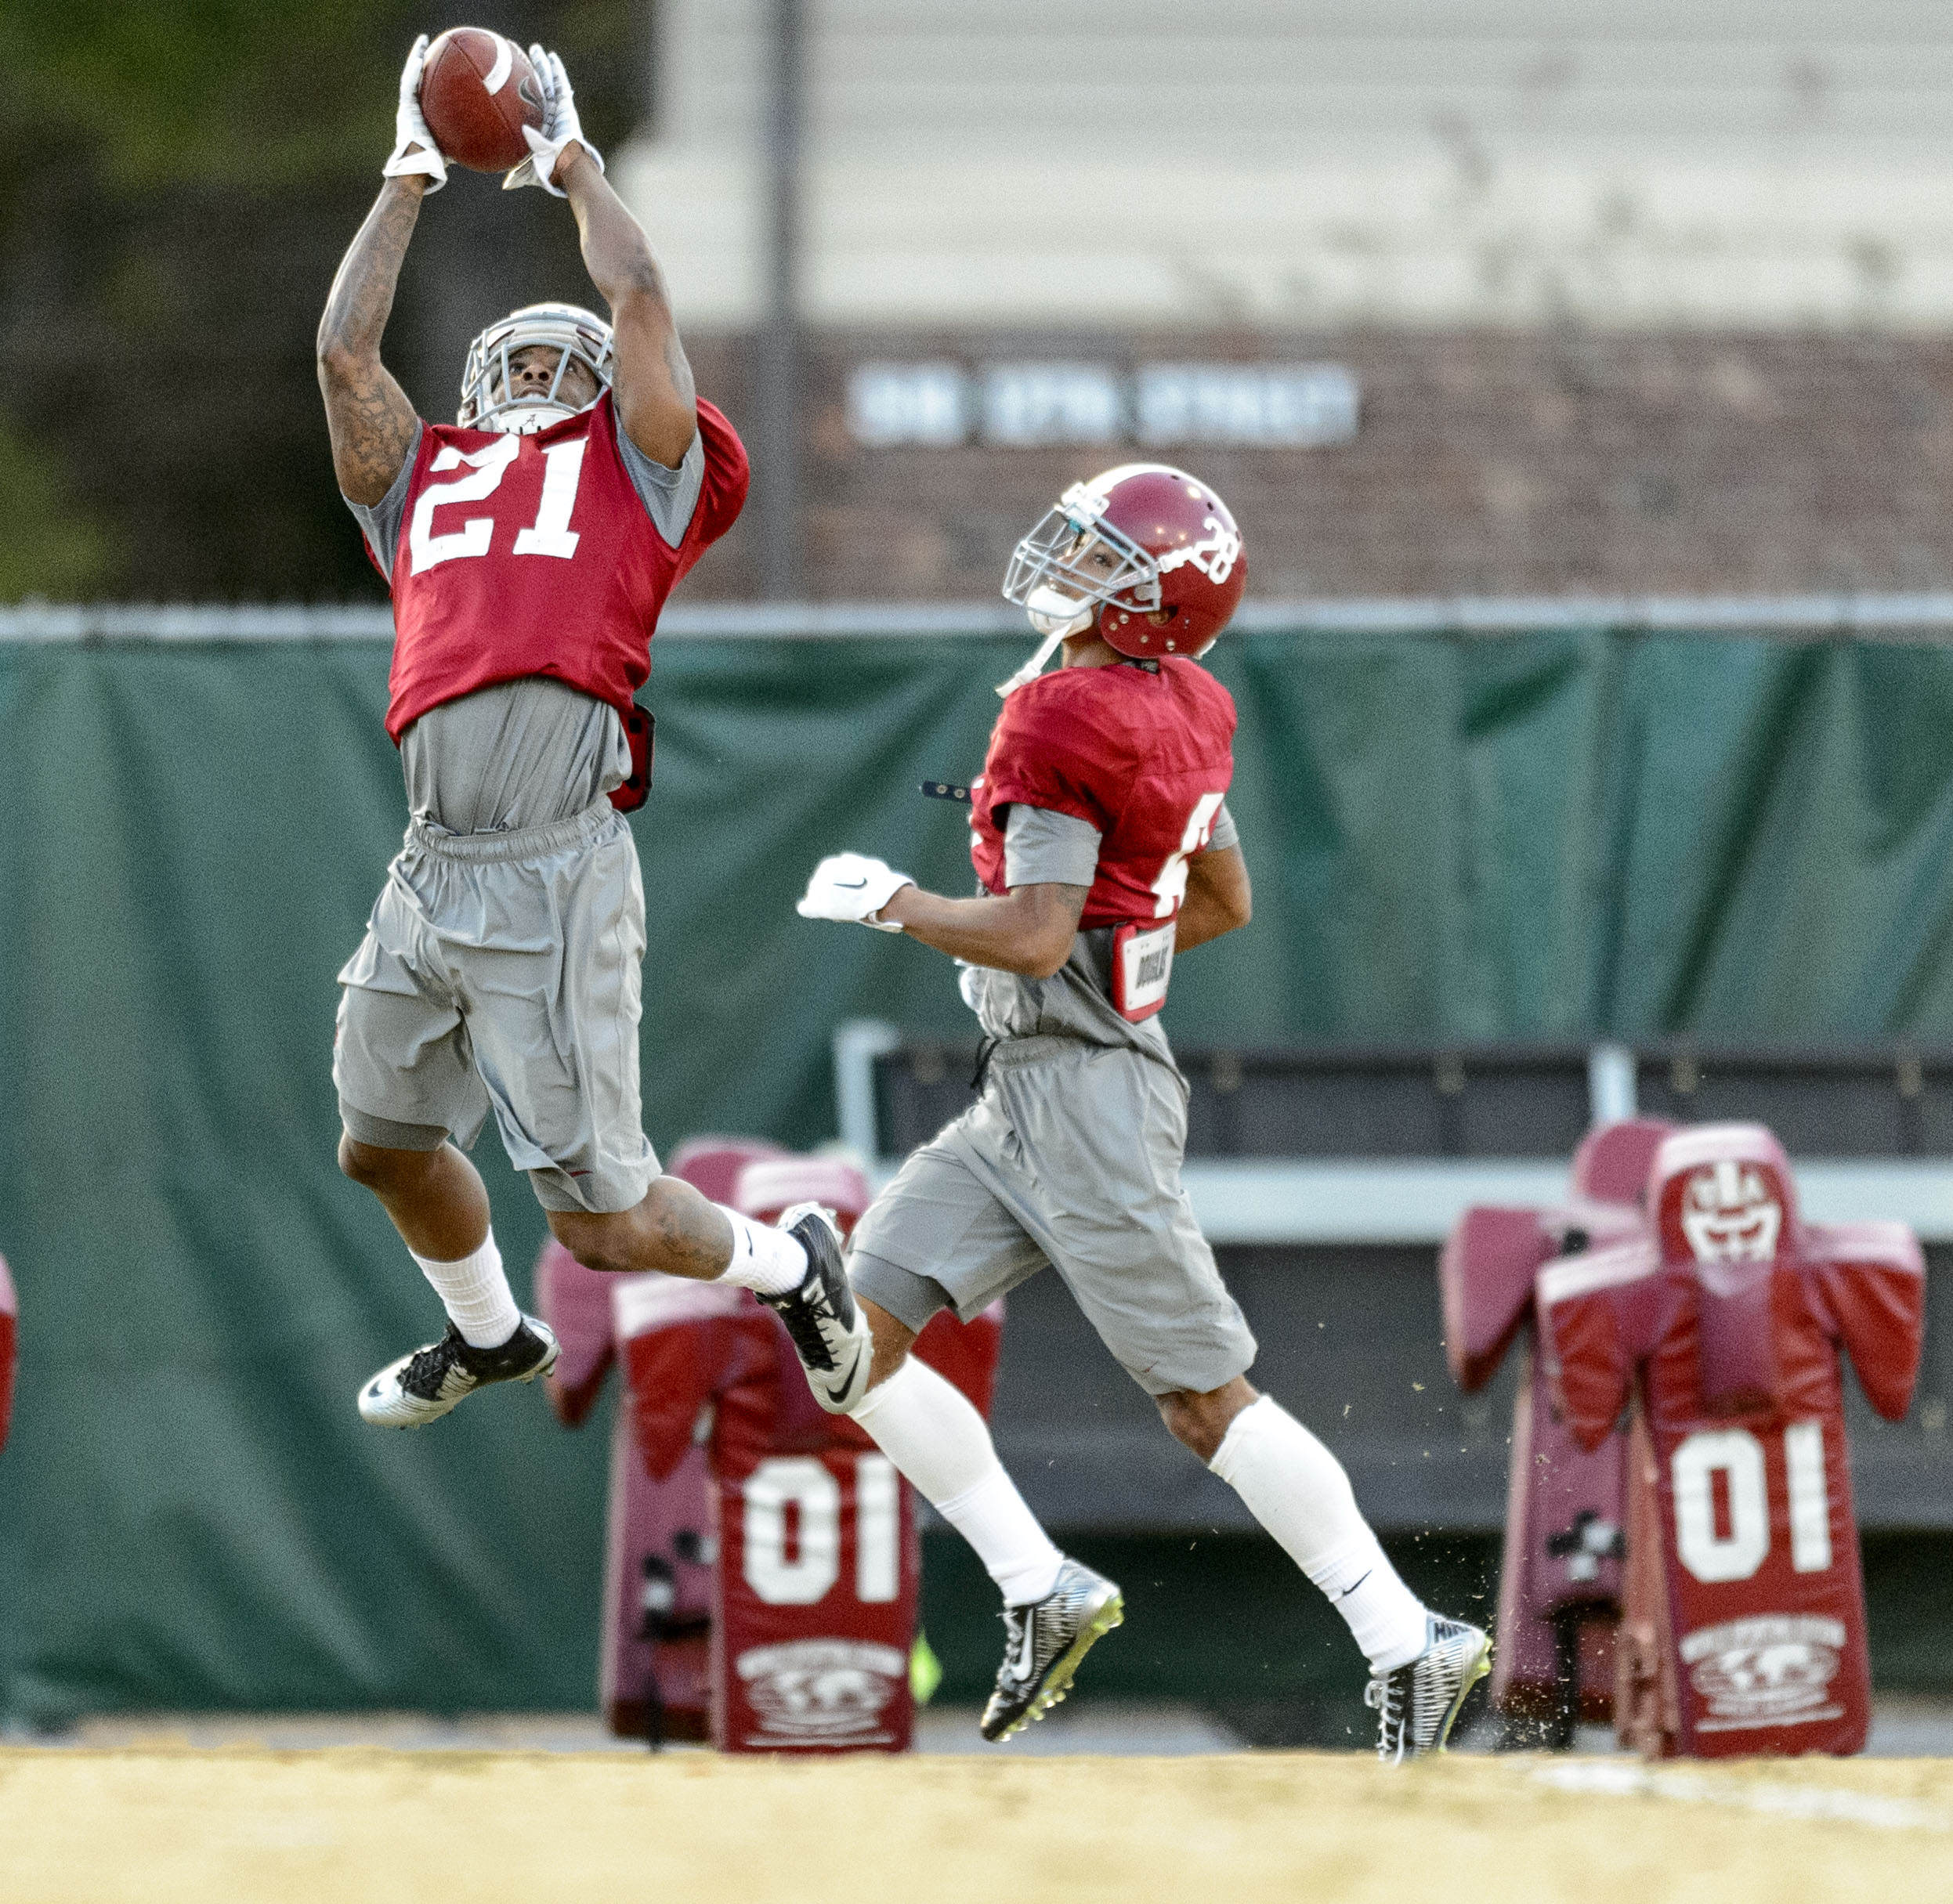 Alabama defensive back Maurice Smith (21) and Alabama defensive back Anthony Averett (28) work through drills during an Alabama NCAA college football practice, Monday, Nov. 24, 2014, at the Thomas-Drew Practice Facility in Tuscaloosa, Ala. (AP Photo/AL.com, Vasha Hunt)